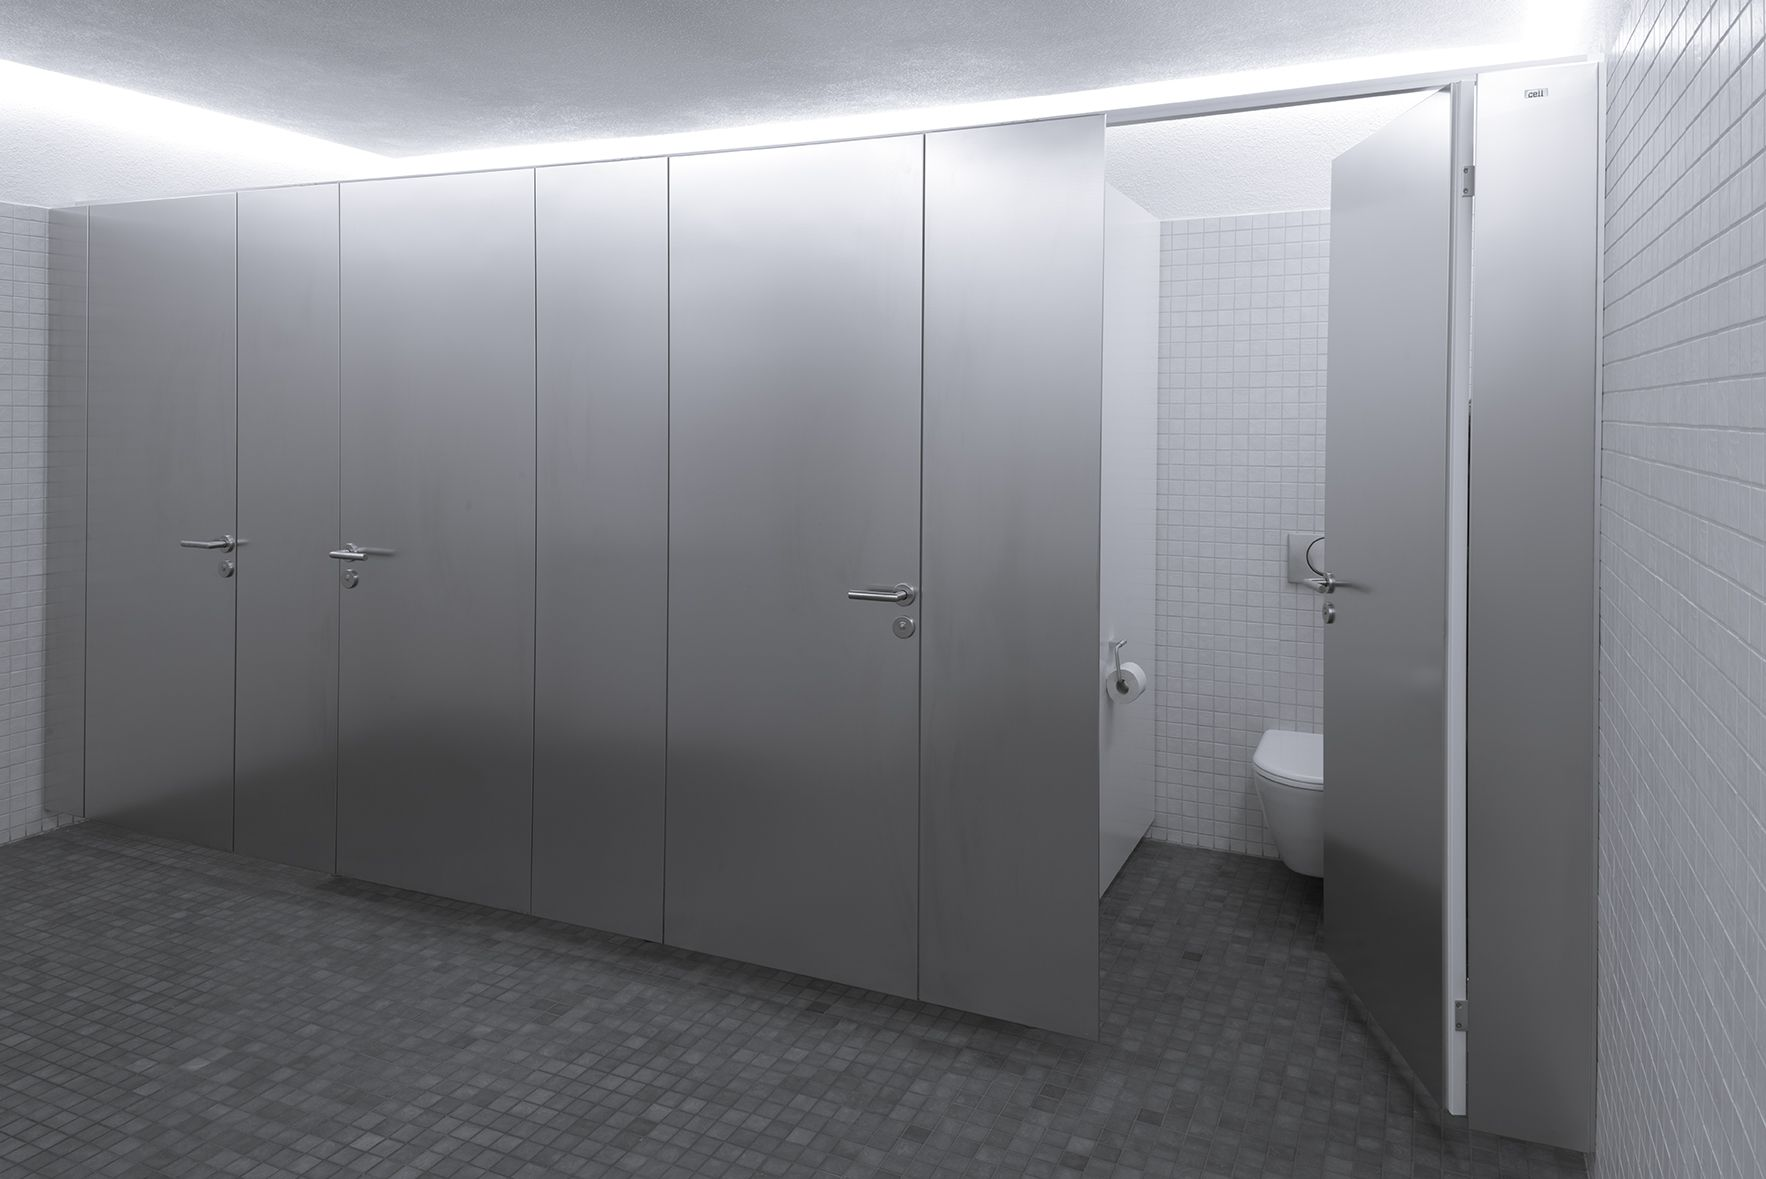 Wc Trennwand Raumhoch Cell In 2019 Trennwände Aus Metall Furniture Home Decor Und Room